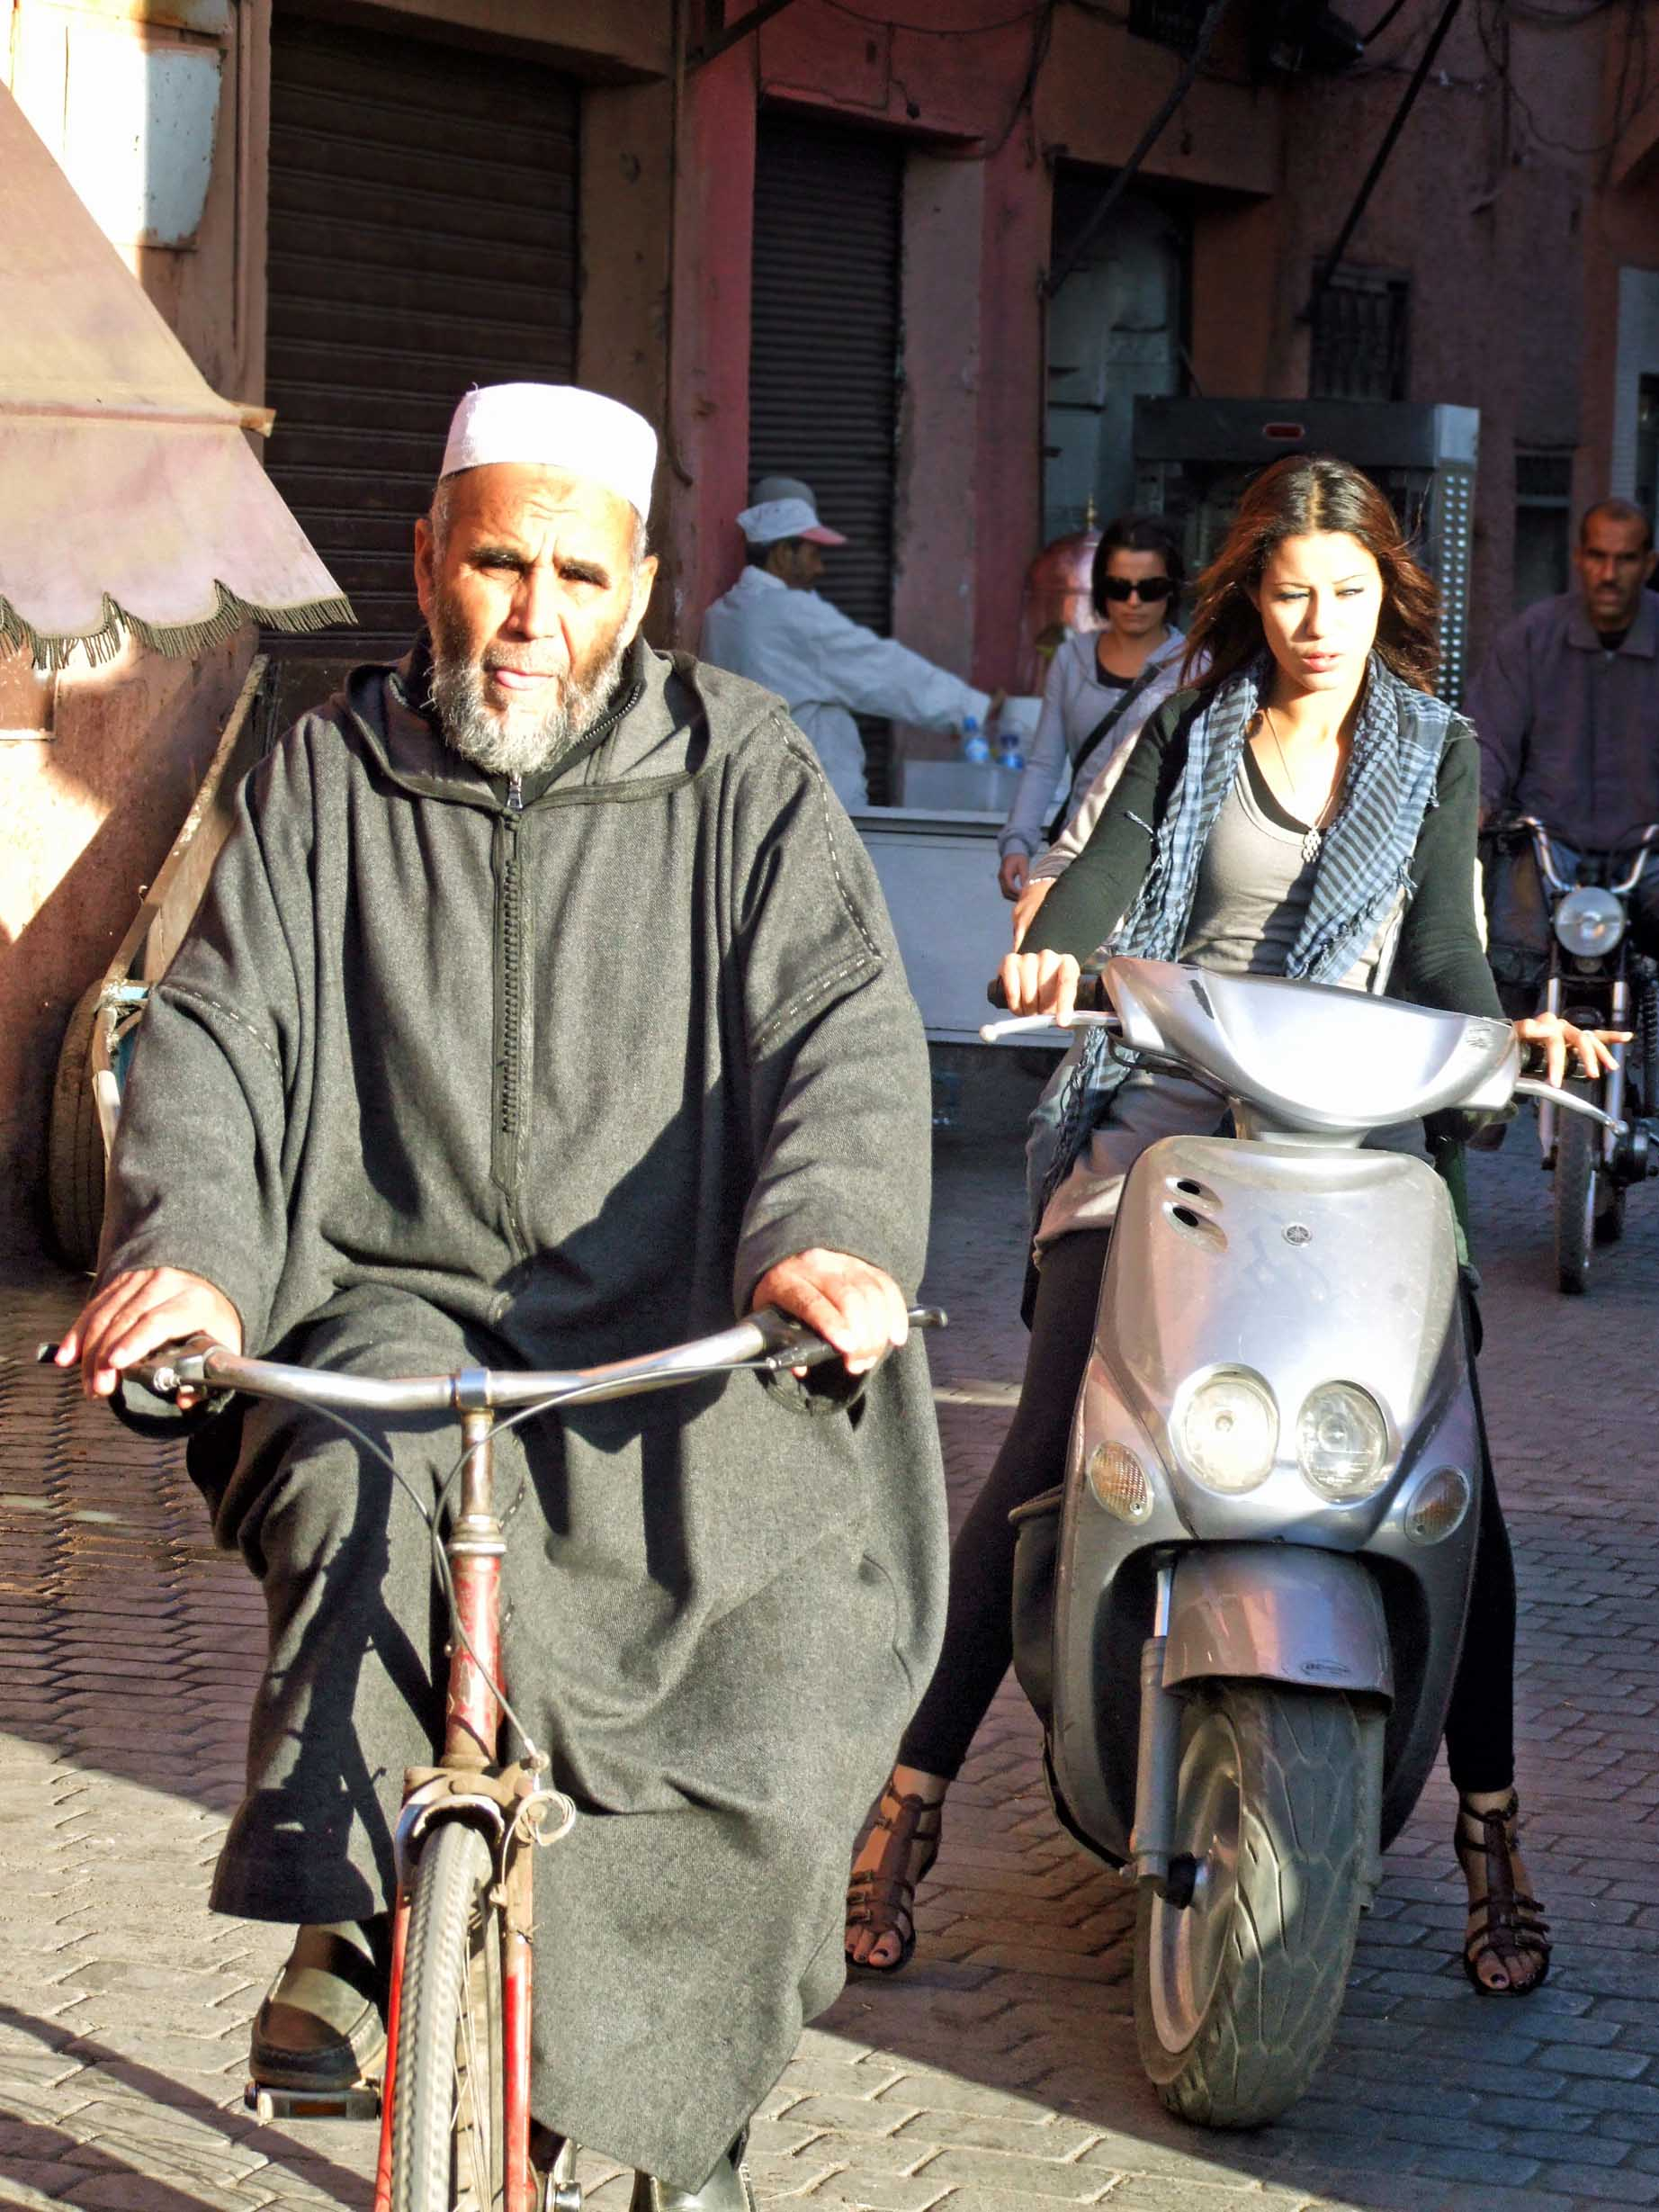 Man in traditional robe on a bicycle and young lady in modern dress on a moped